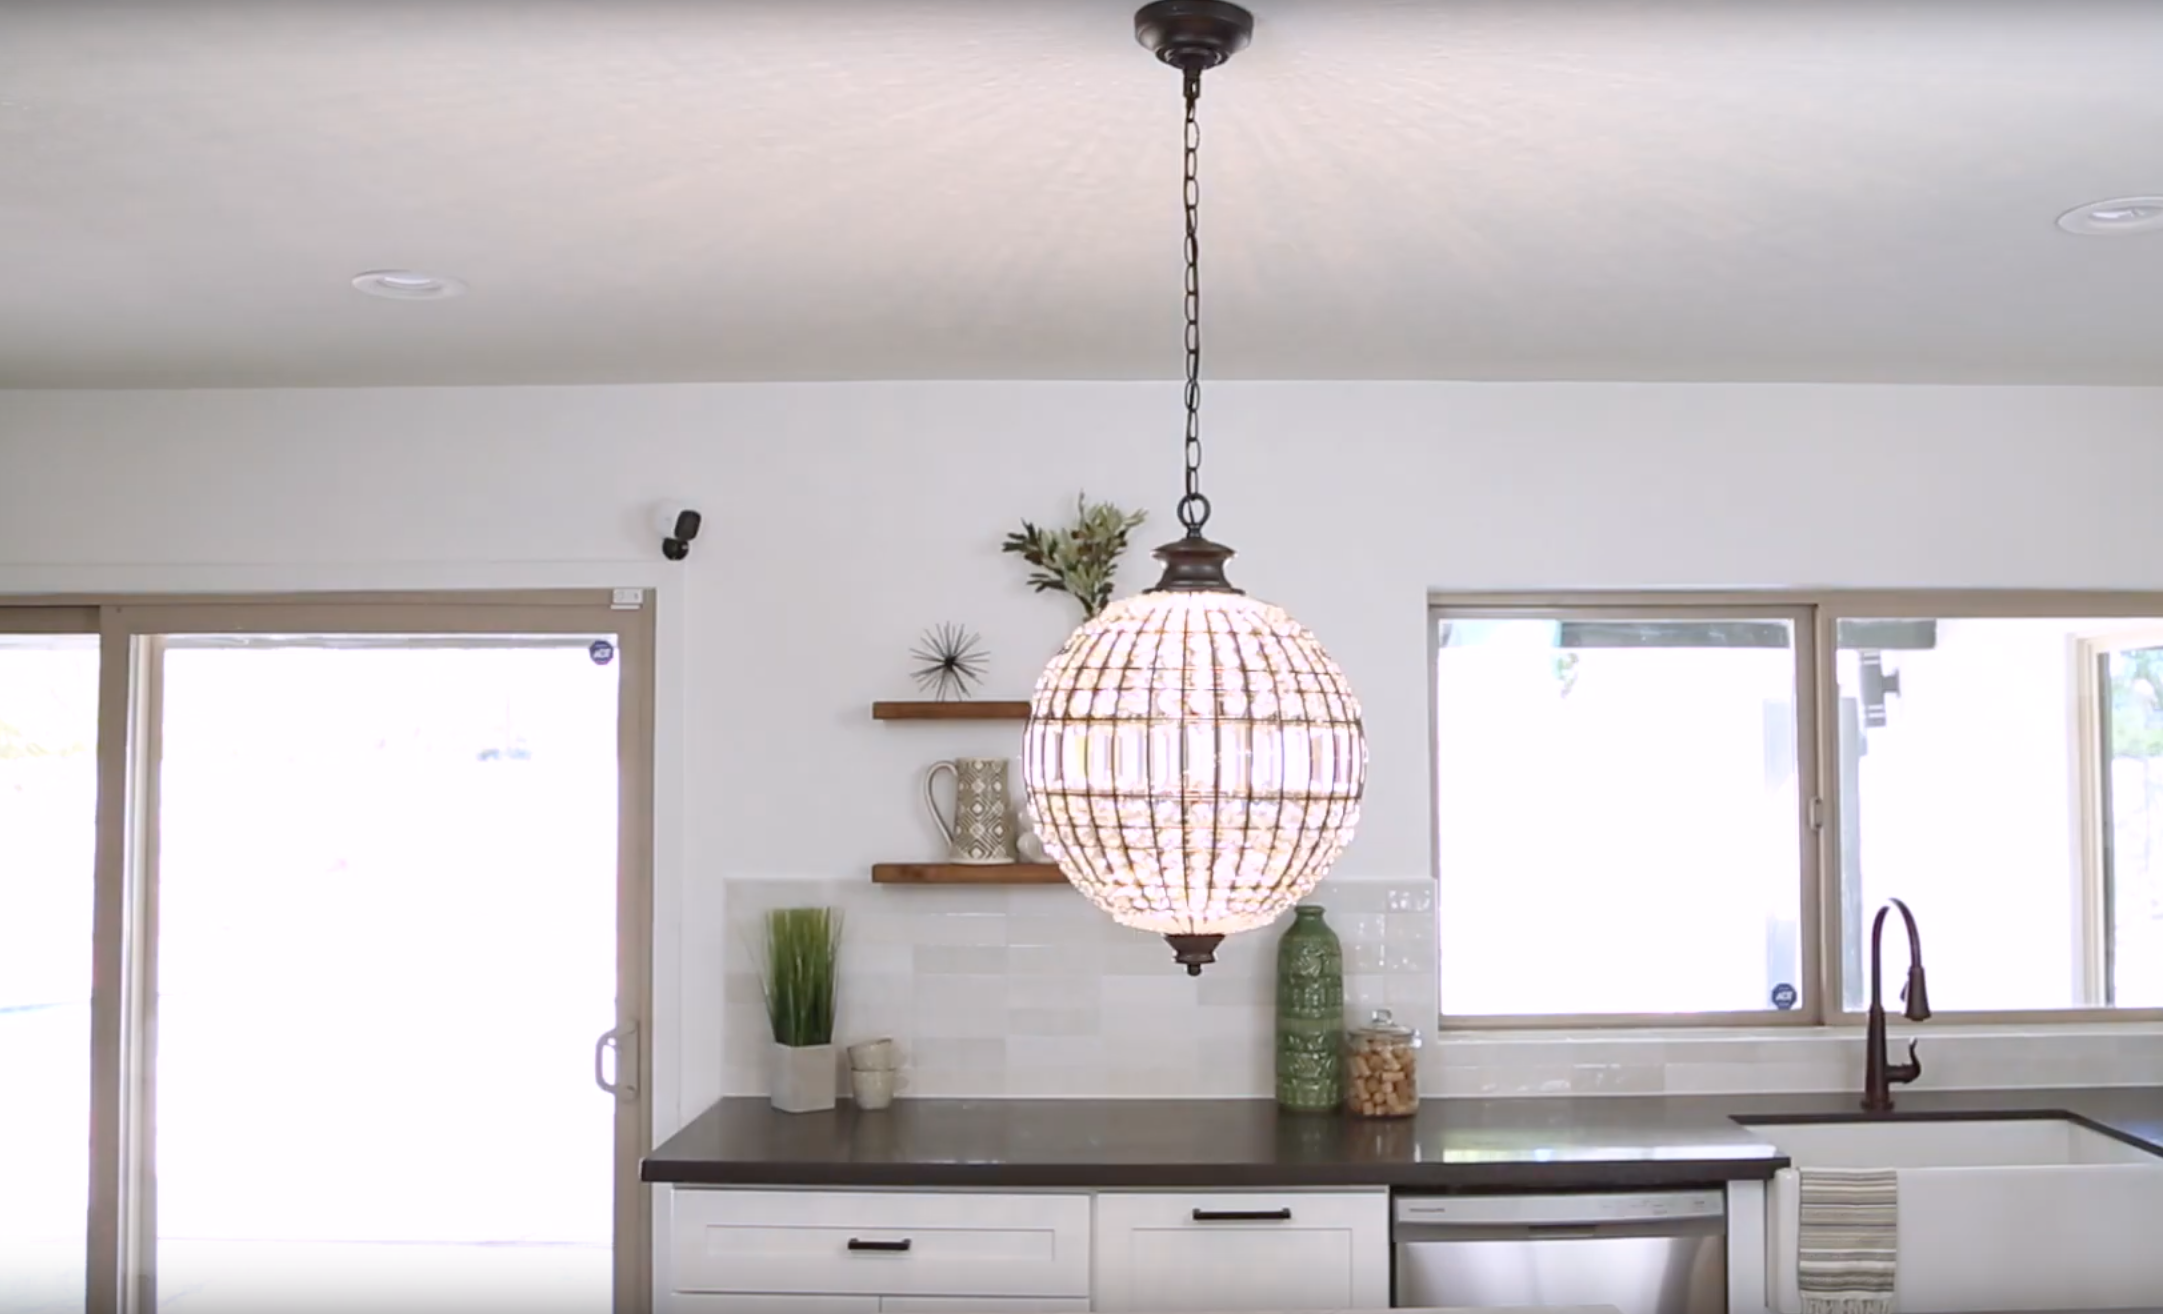 How to Install a Chain Link Pendant Light